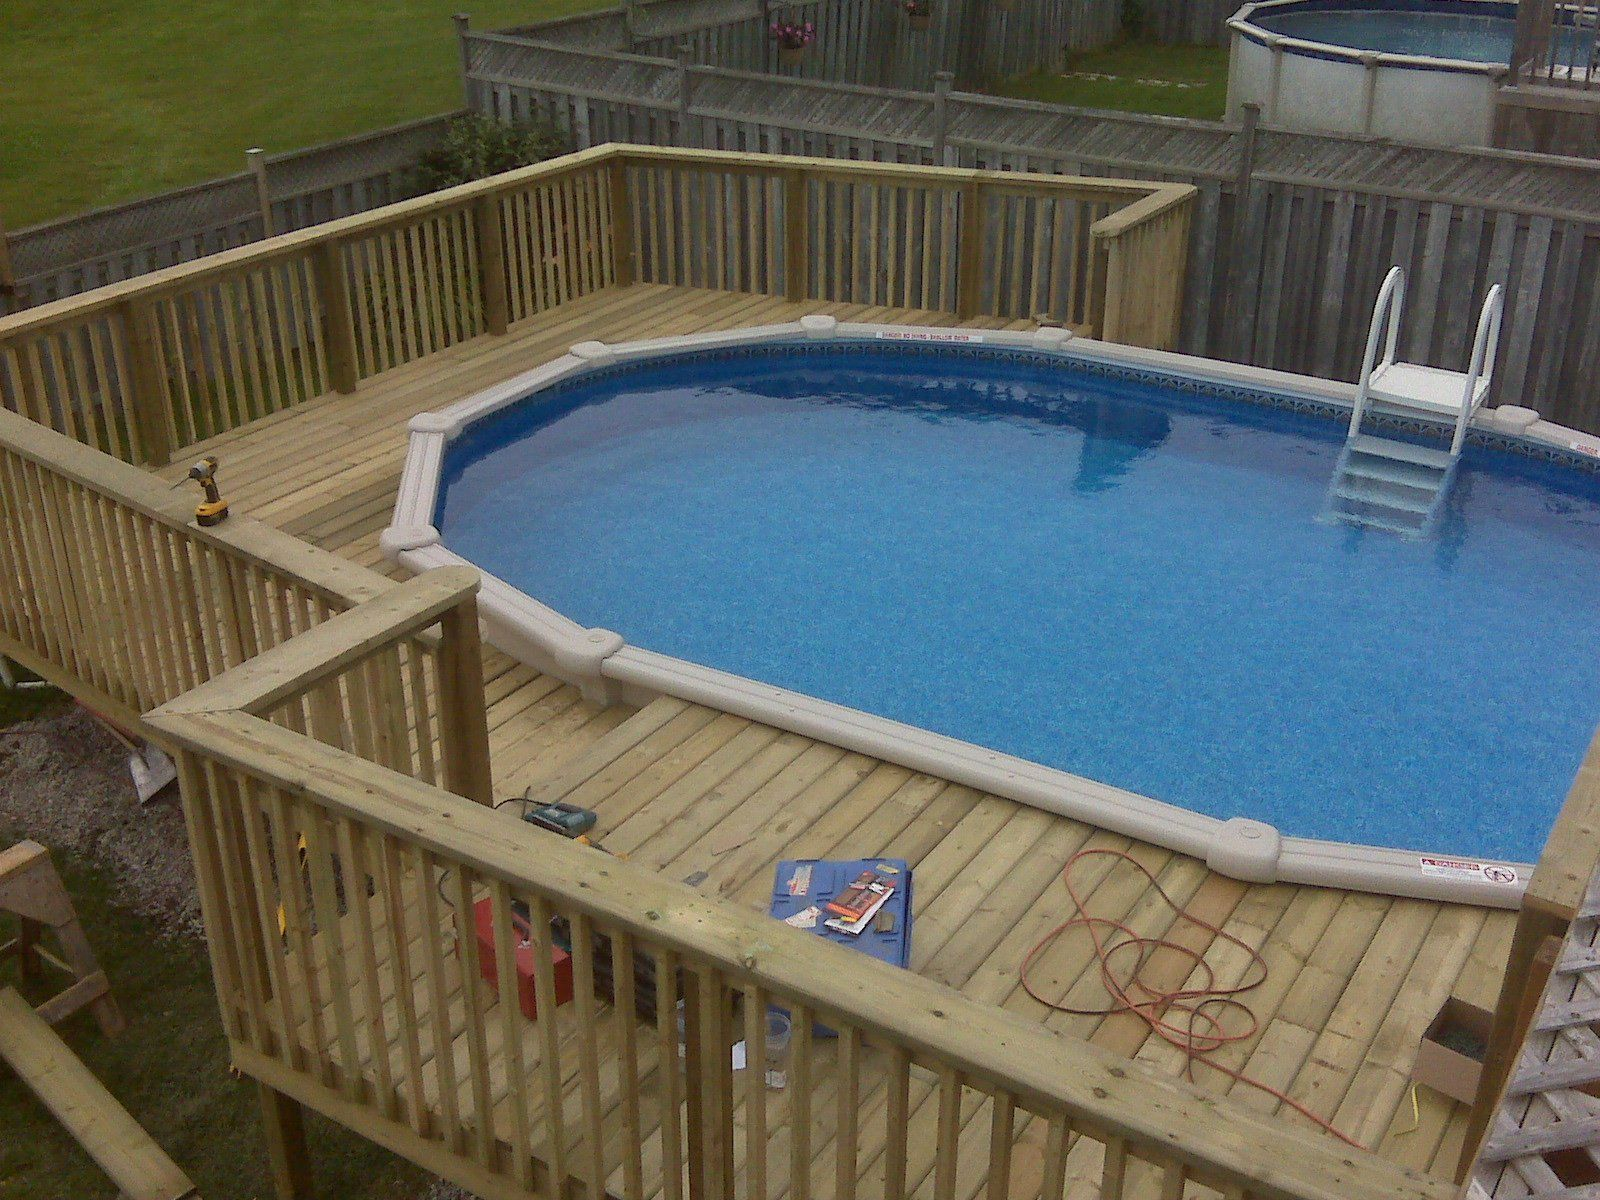 above ground pools decks idea bing images - Above Ground Pool Outside Steps